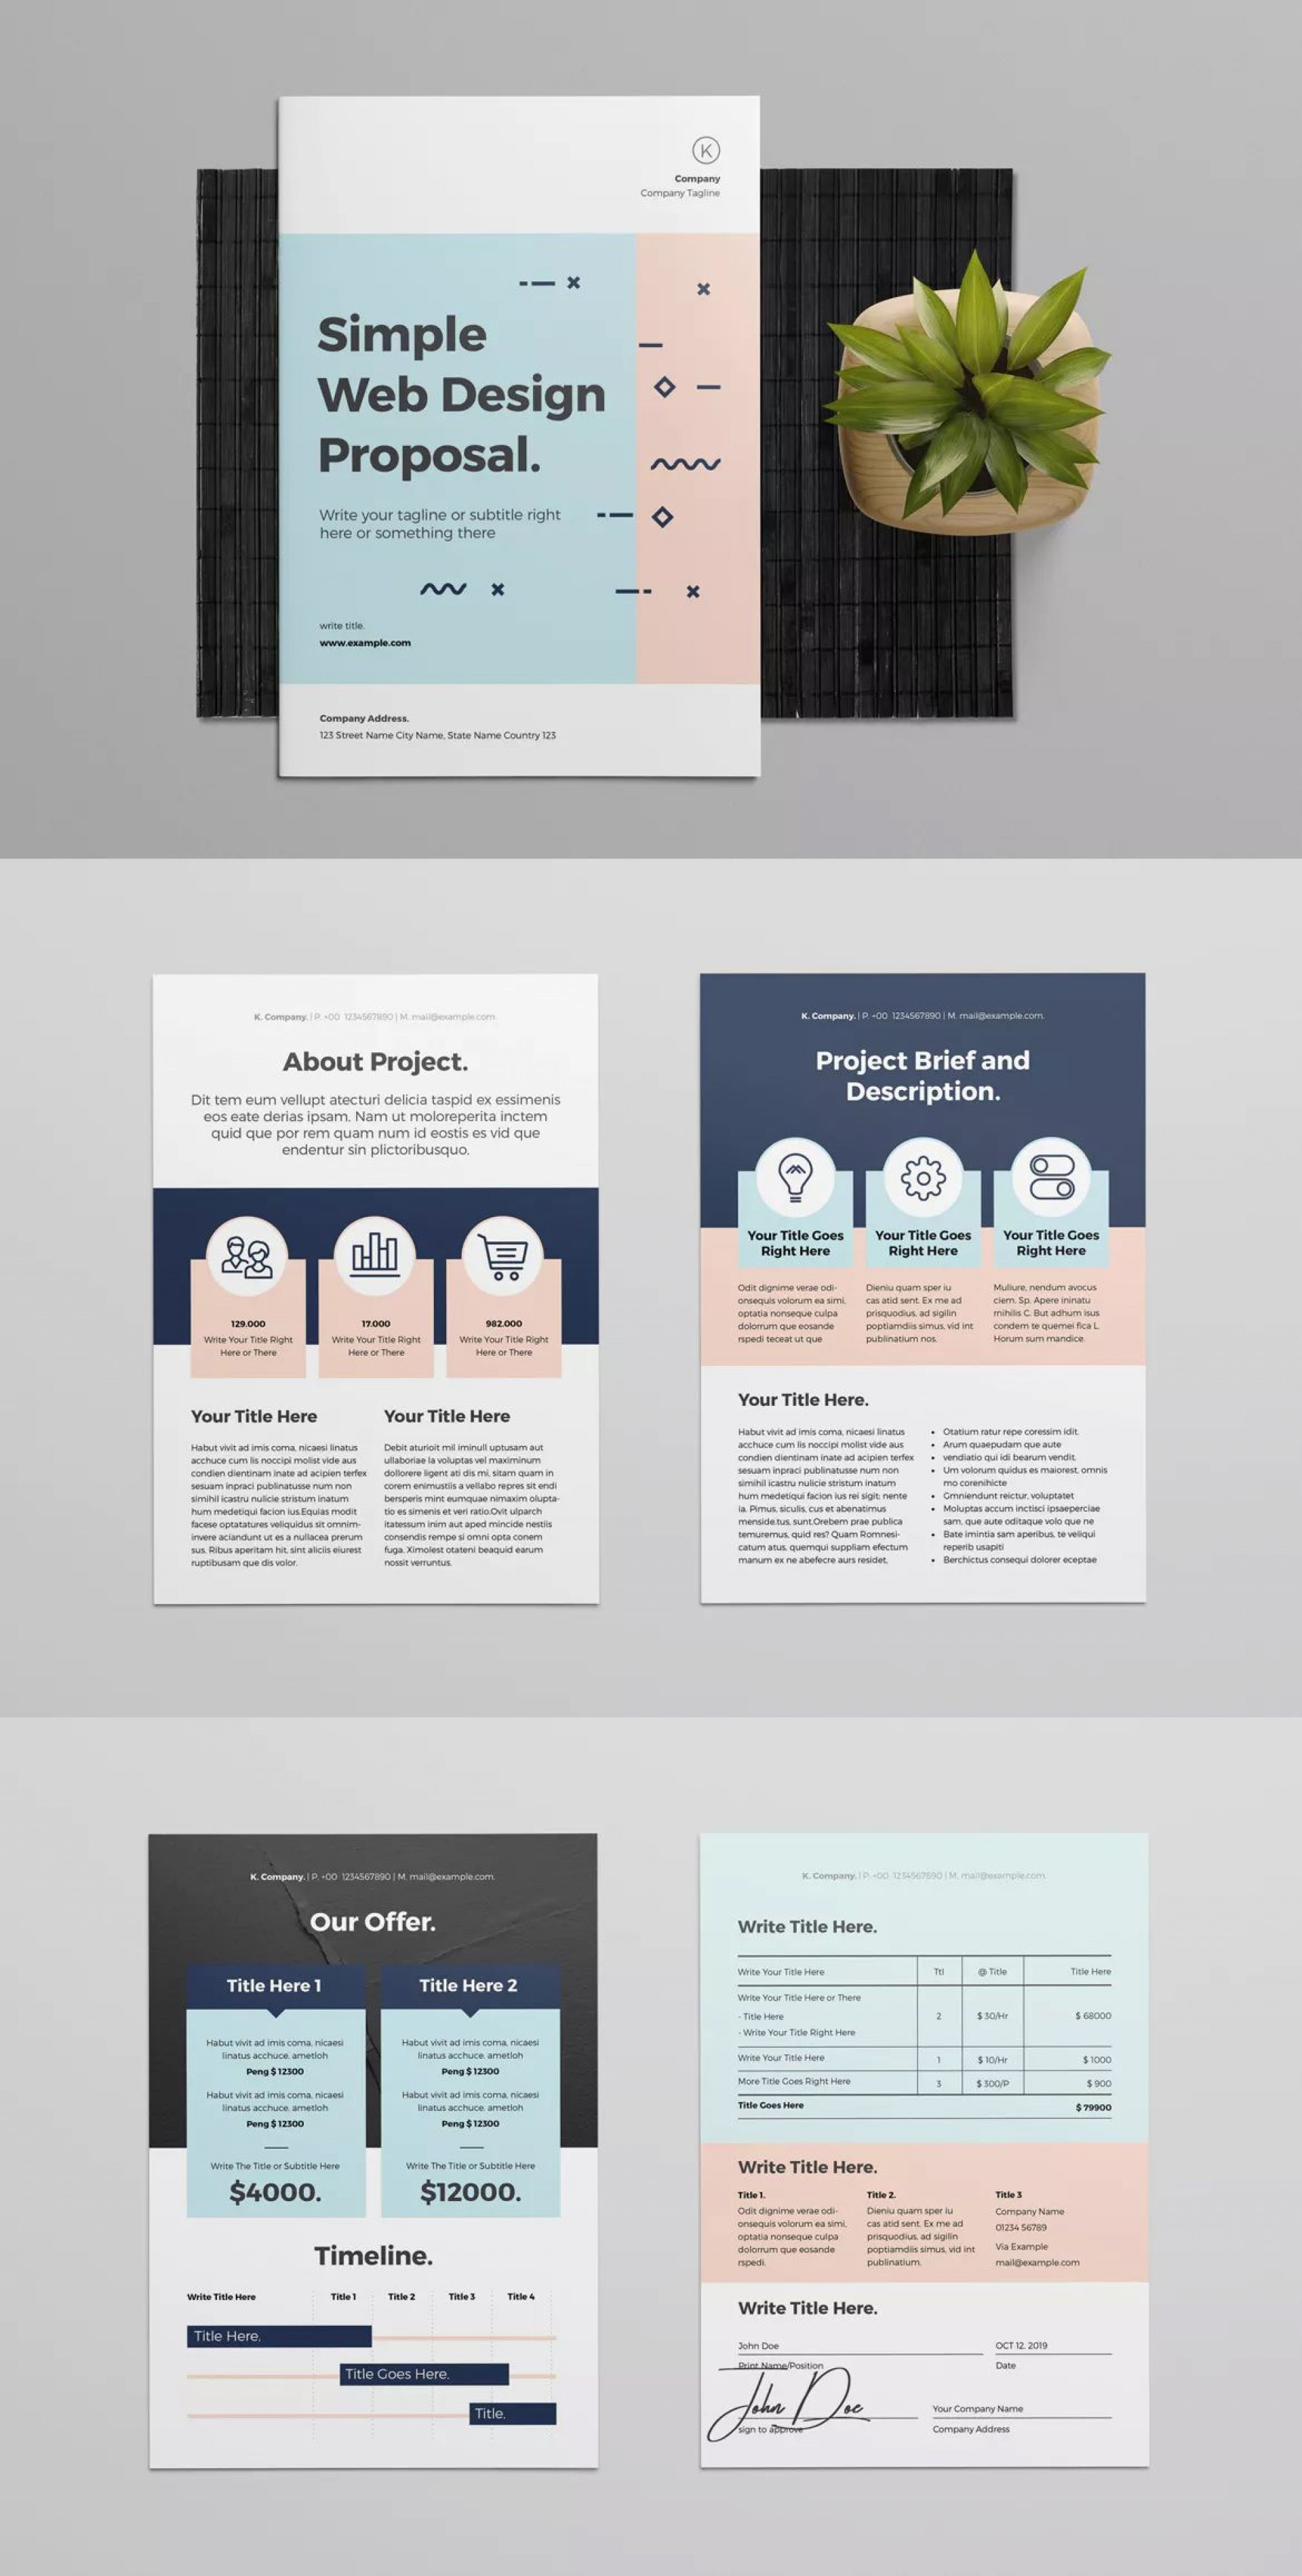 001 Amazing Web Design Proposal Template Indesign High Resolution 1920